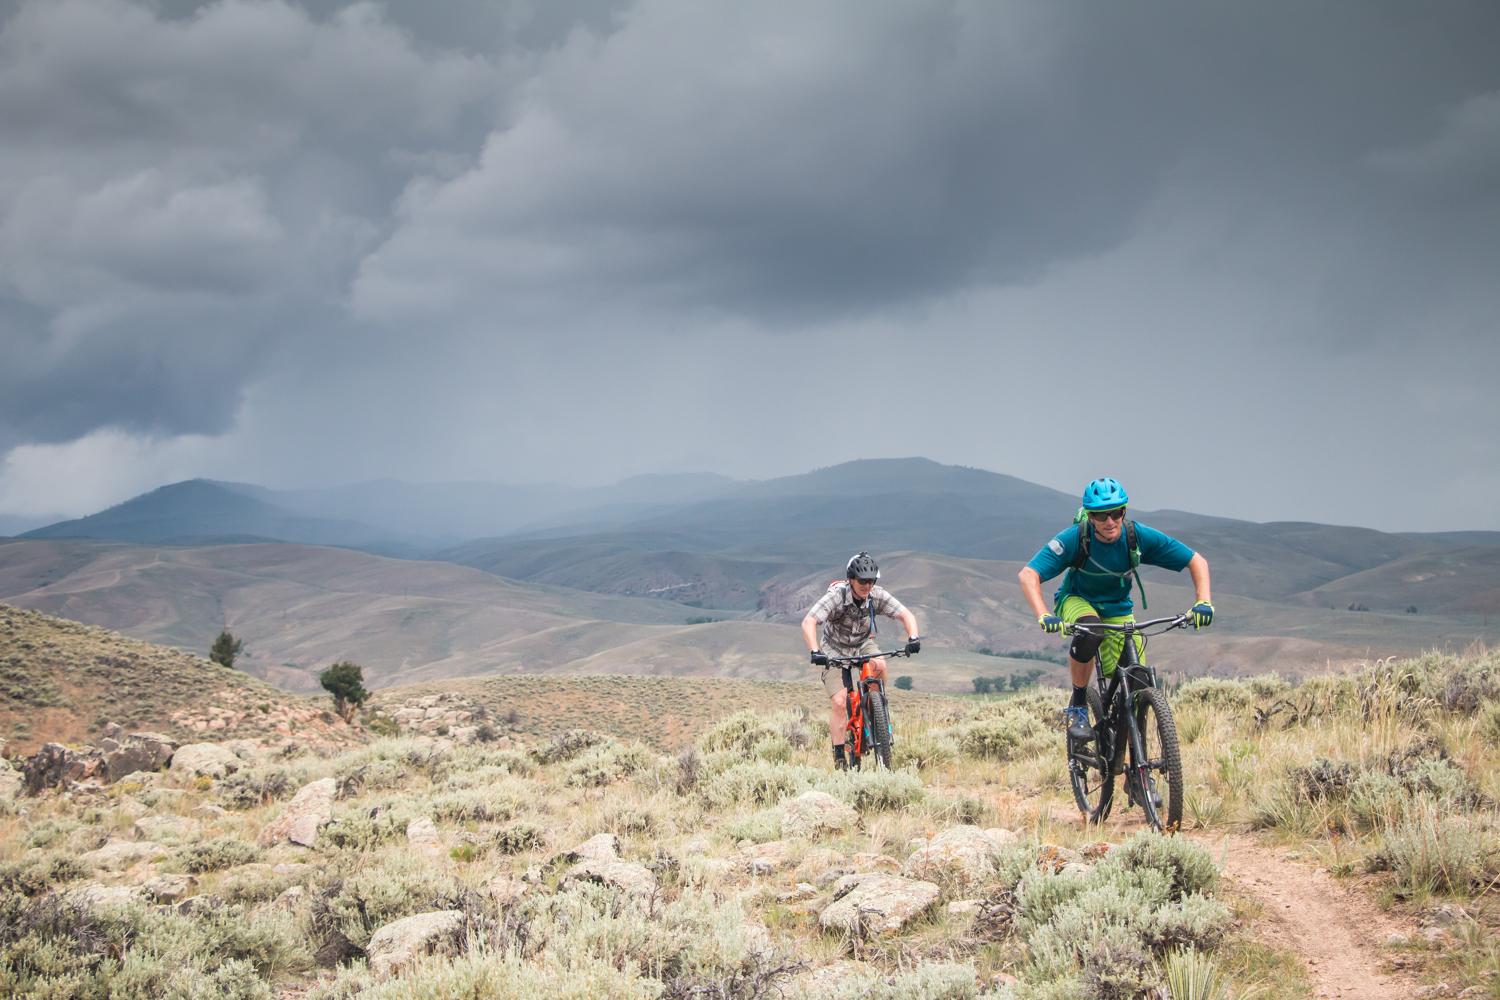 The Beginners Guide to Mountain Bike Adventure Travel